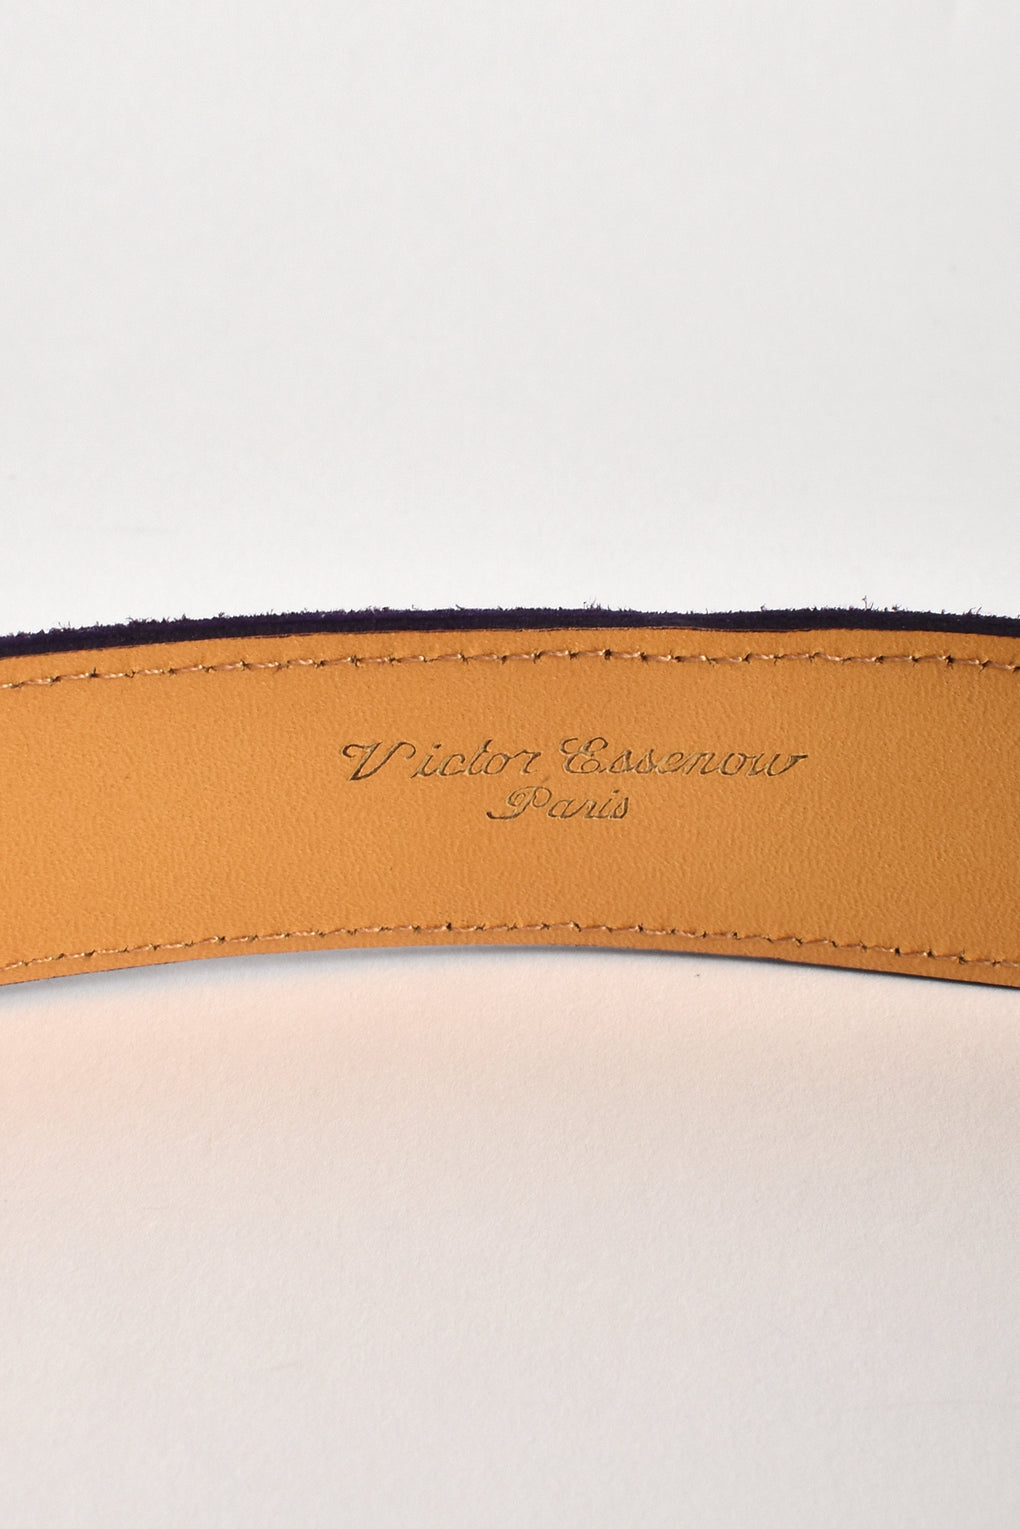 VICTOR ESSENOW 70s gold buckle suede belt / M